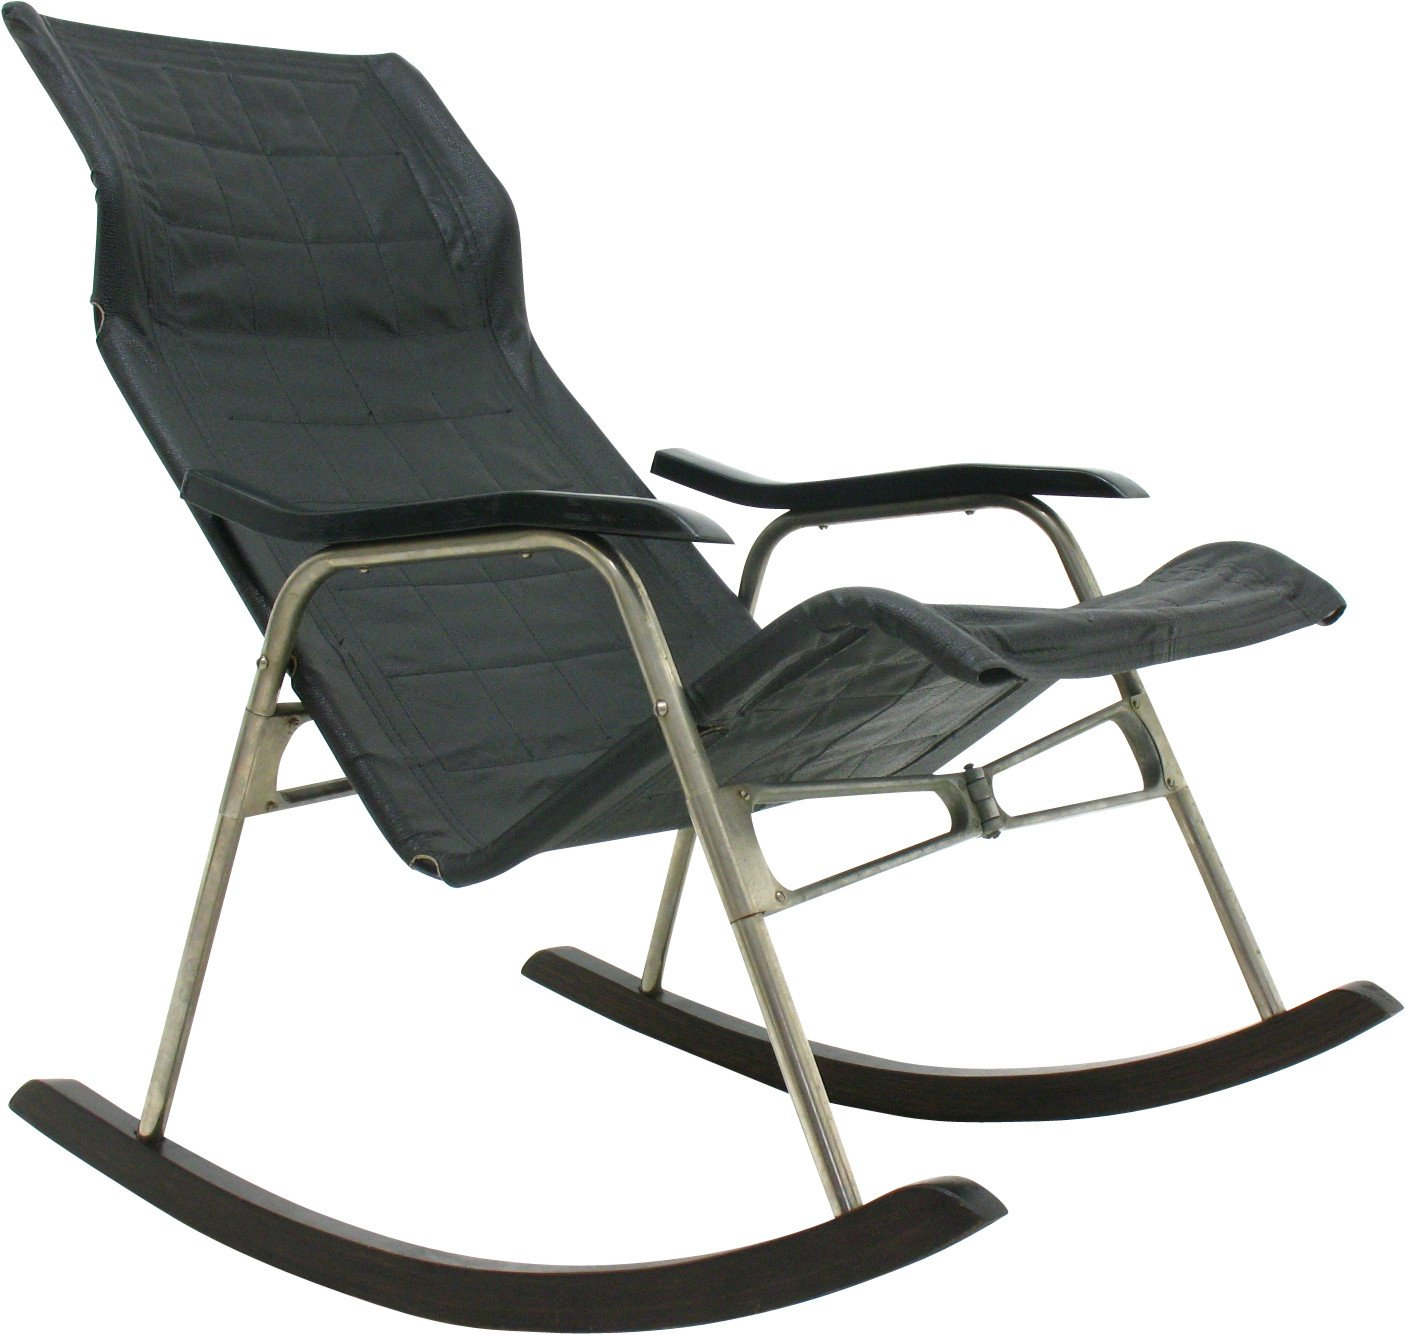 Rocking Chair by T. Nii, 1960s